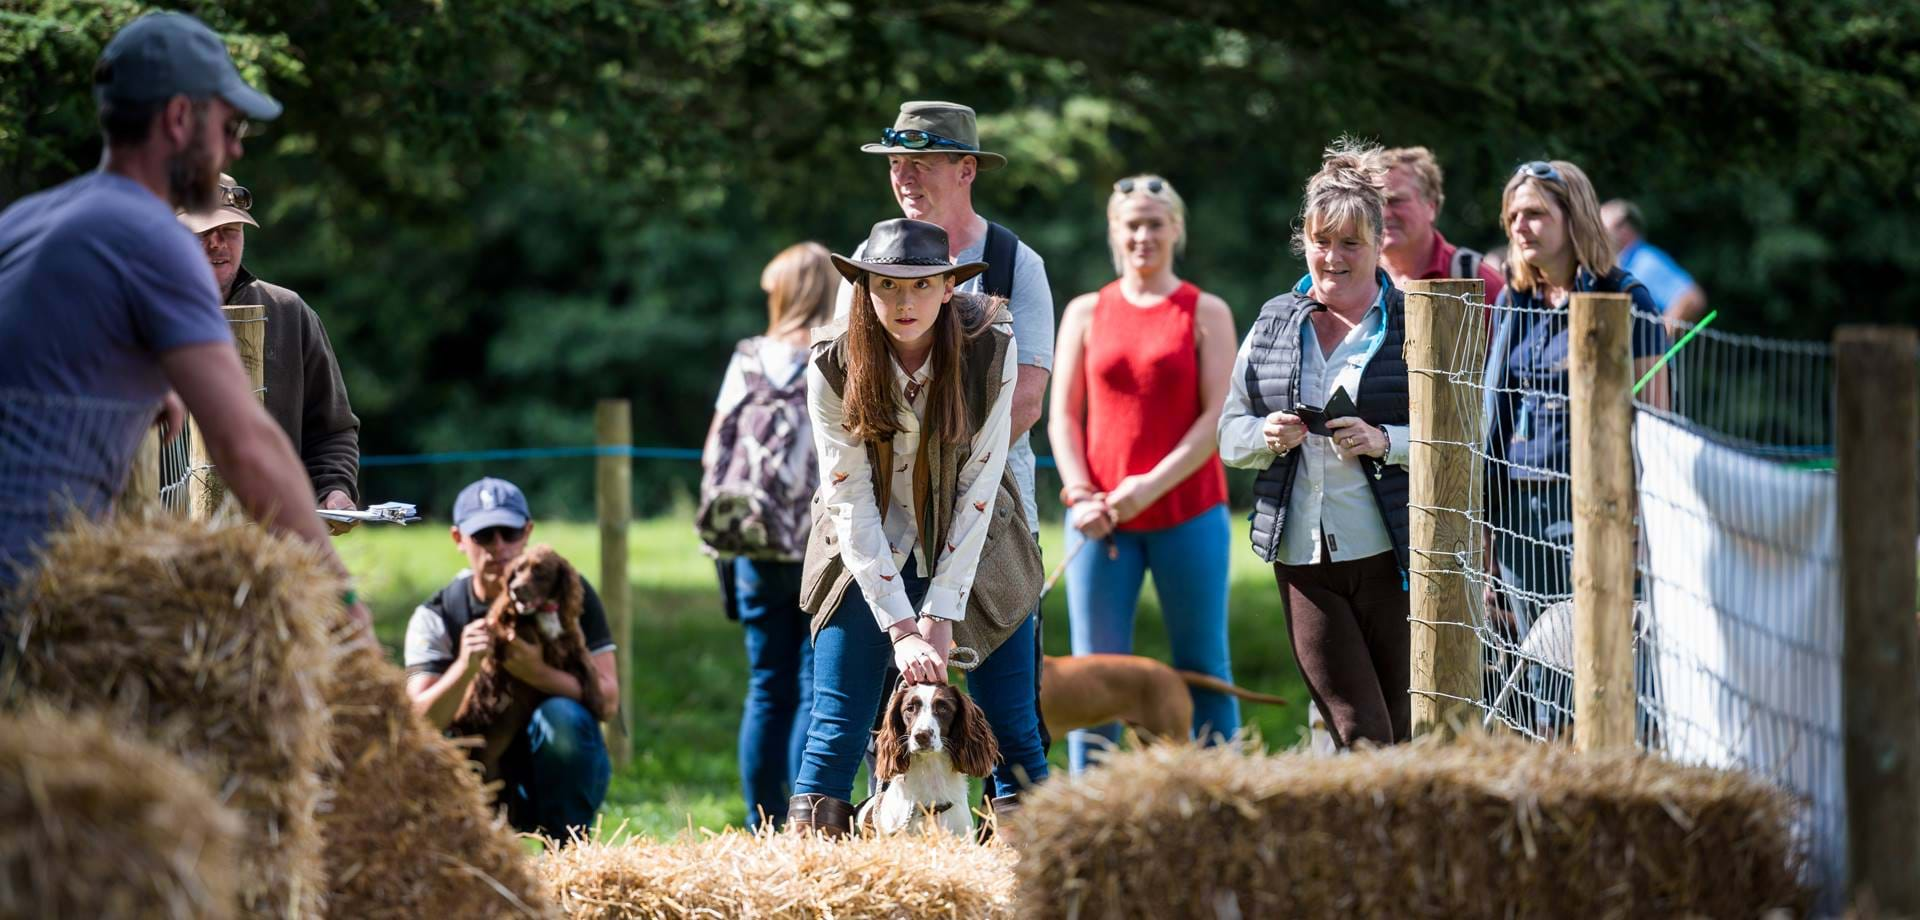 Dogs at the Chatsworth Country Fair